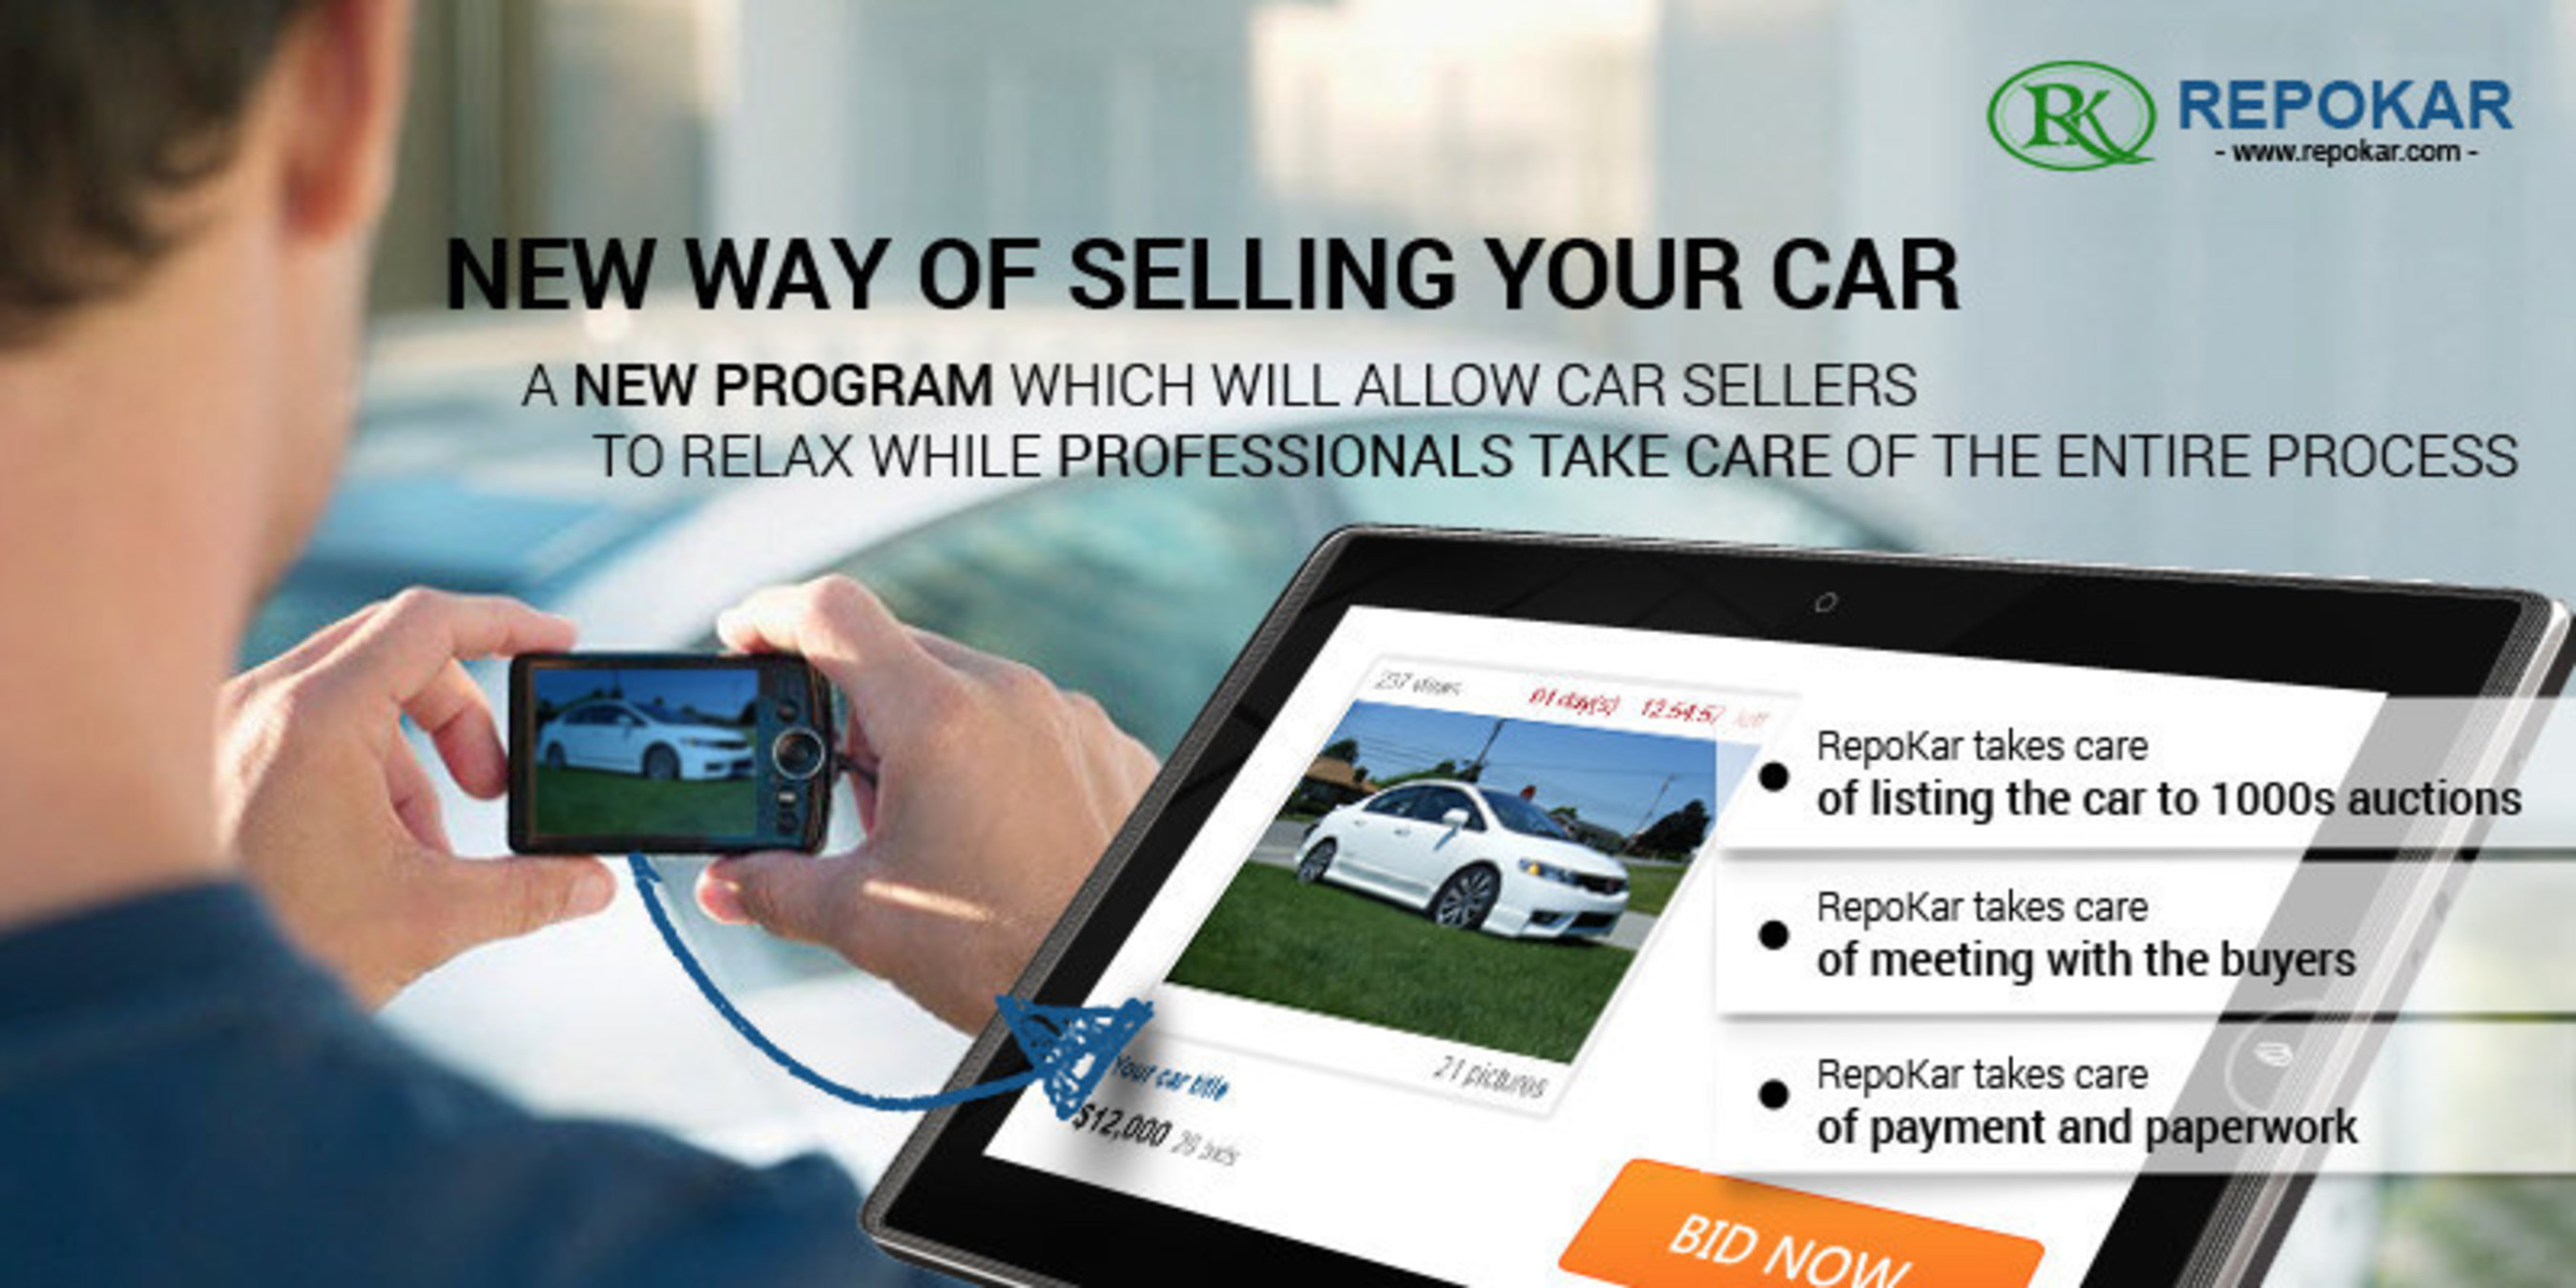 Popular Public Auto Auction Company Repokar Introduces New Program To Offer Stress Free Experience In Selling Your Car